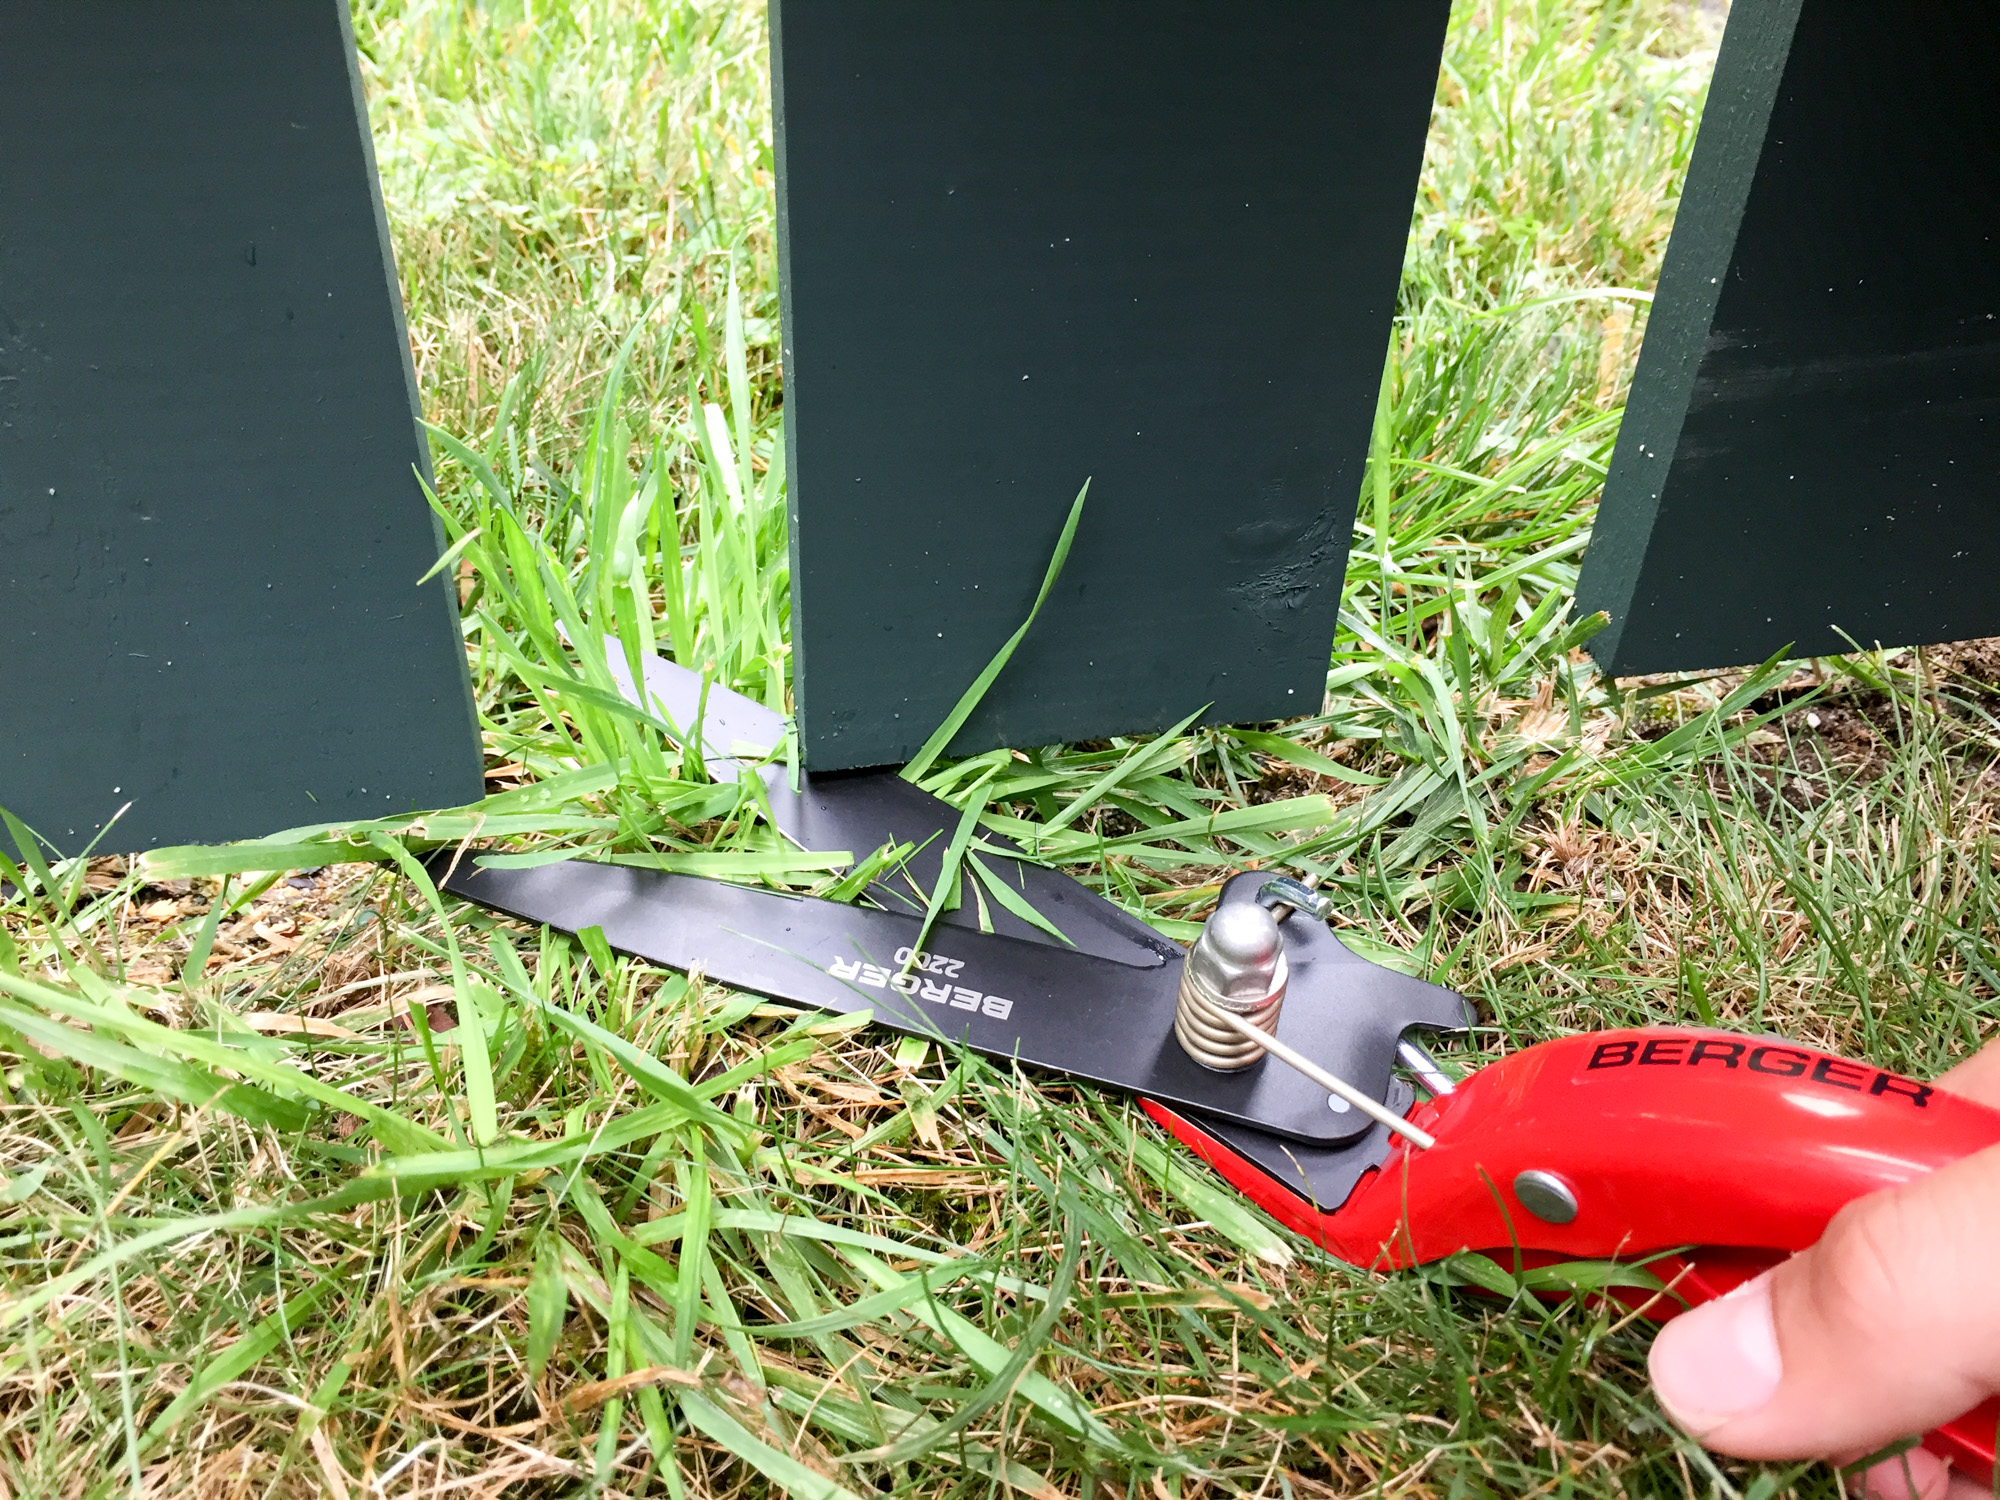 Berger Tools grass shears- preparing for a garden fence